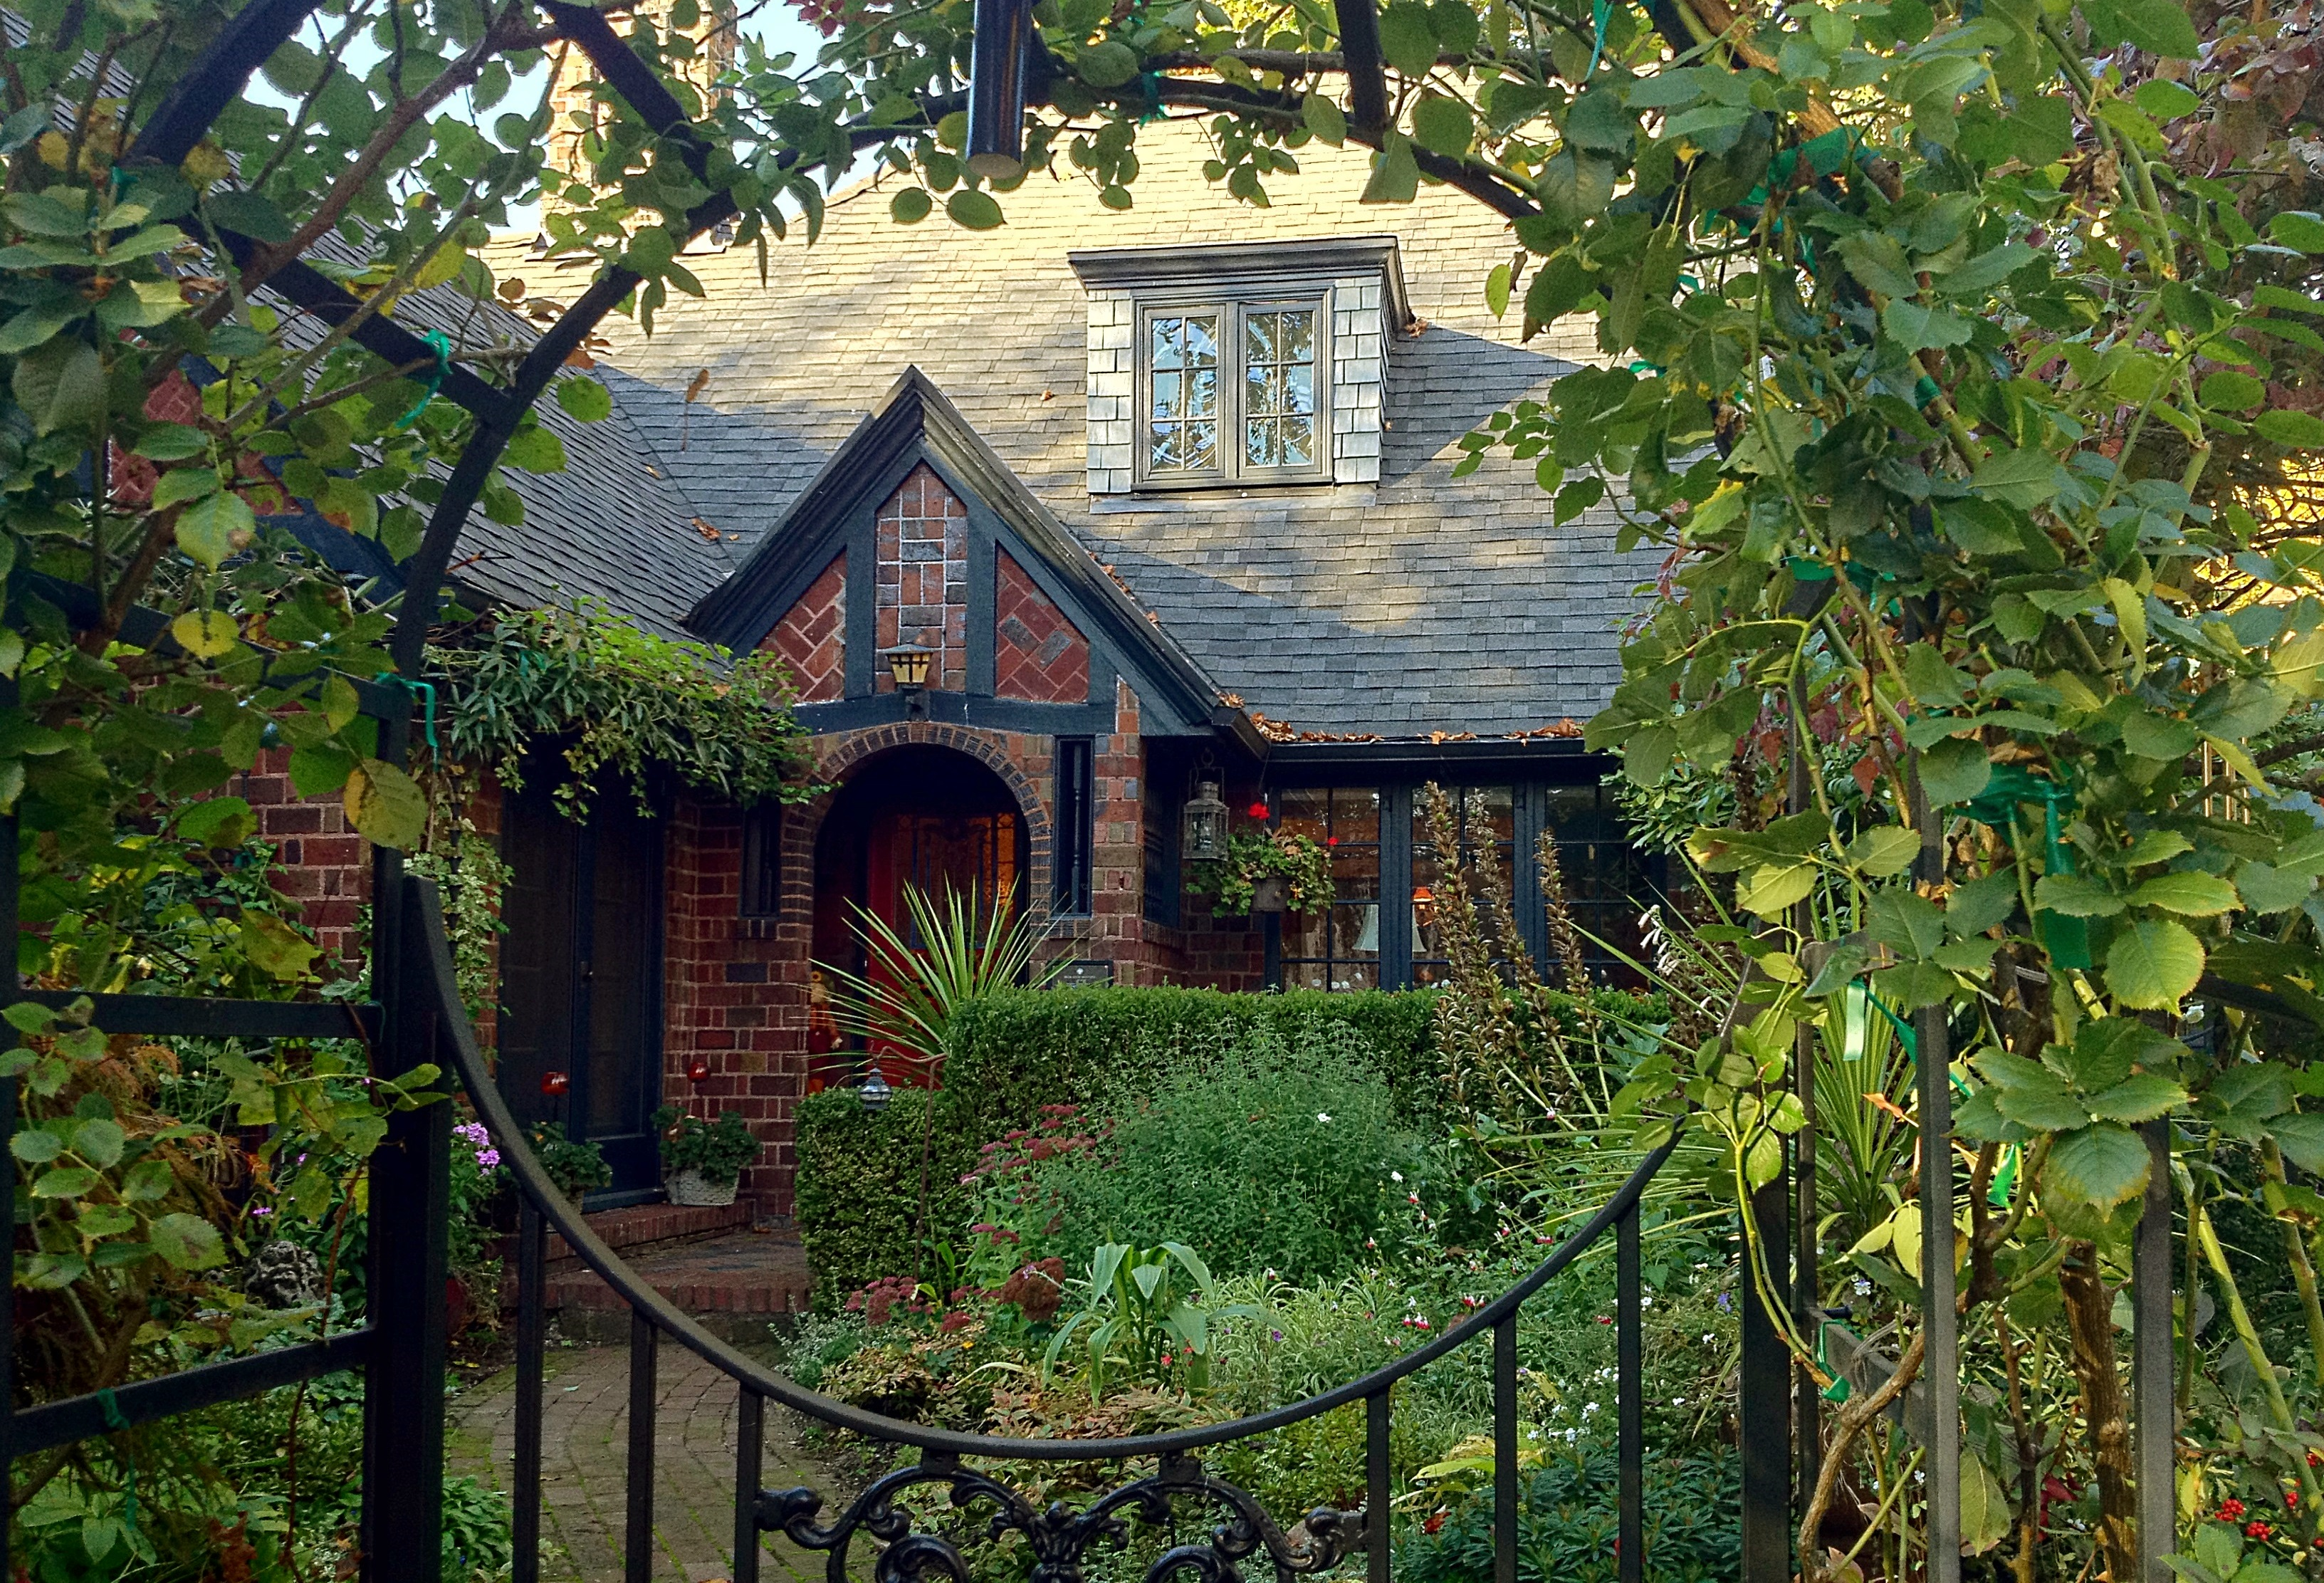 the brick house beautiful: a unique and timeless portland landmark